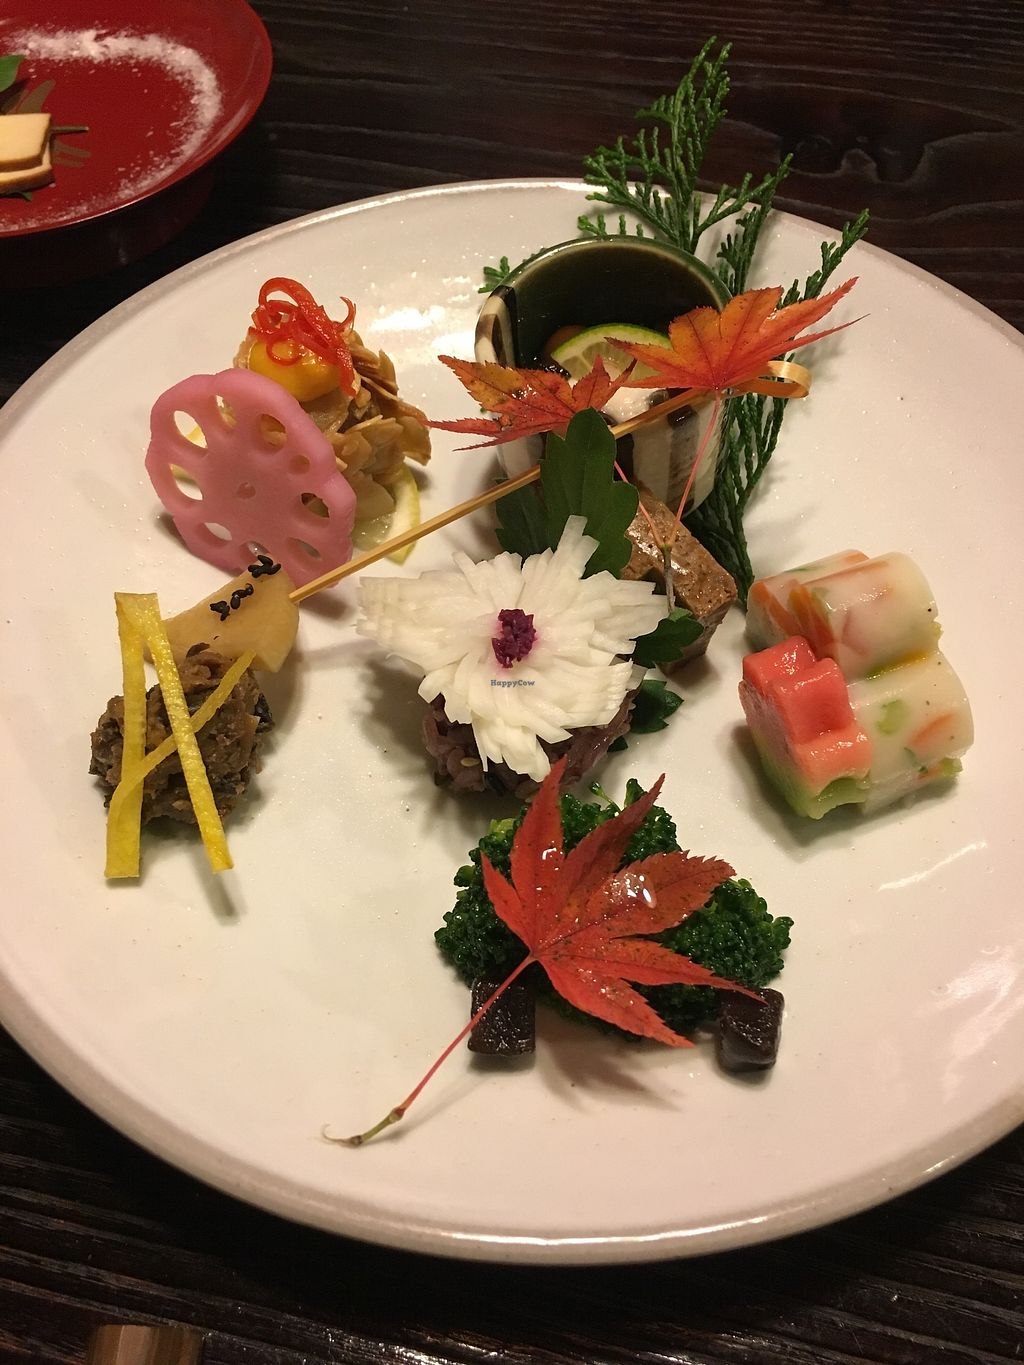 """Photo of Bon - Taito-ku  by <a href=""""/members/profile/form"""">form</a> <br/>So good! <br/> November 25, 2017  - <a href='/contact/abuse/image/91/329173'>Report</a>"""